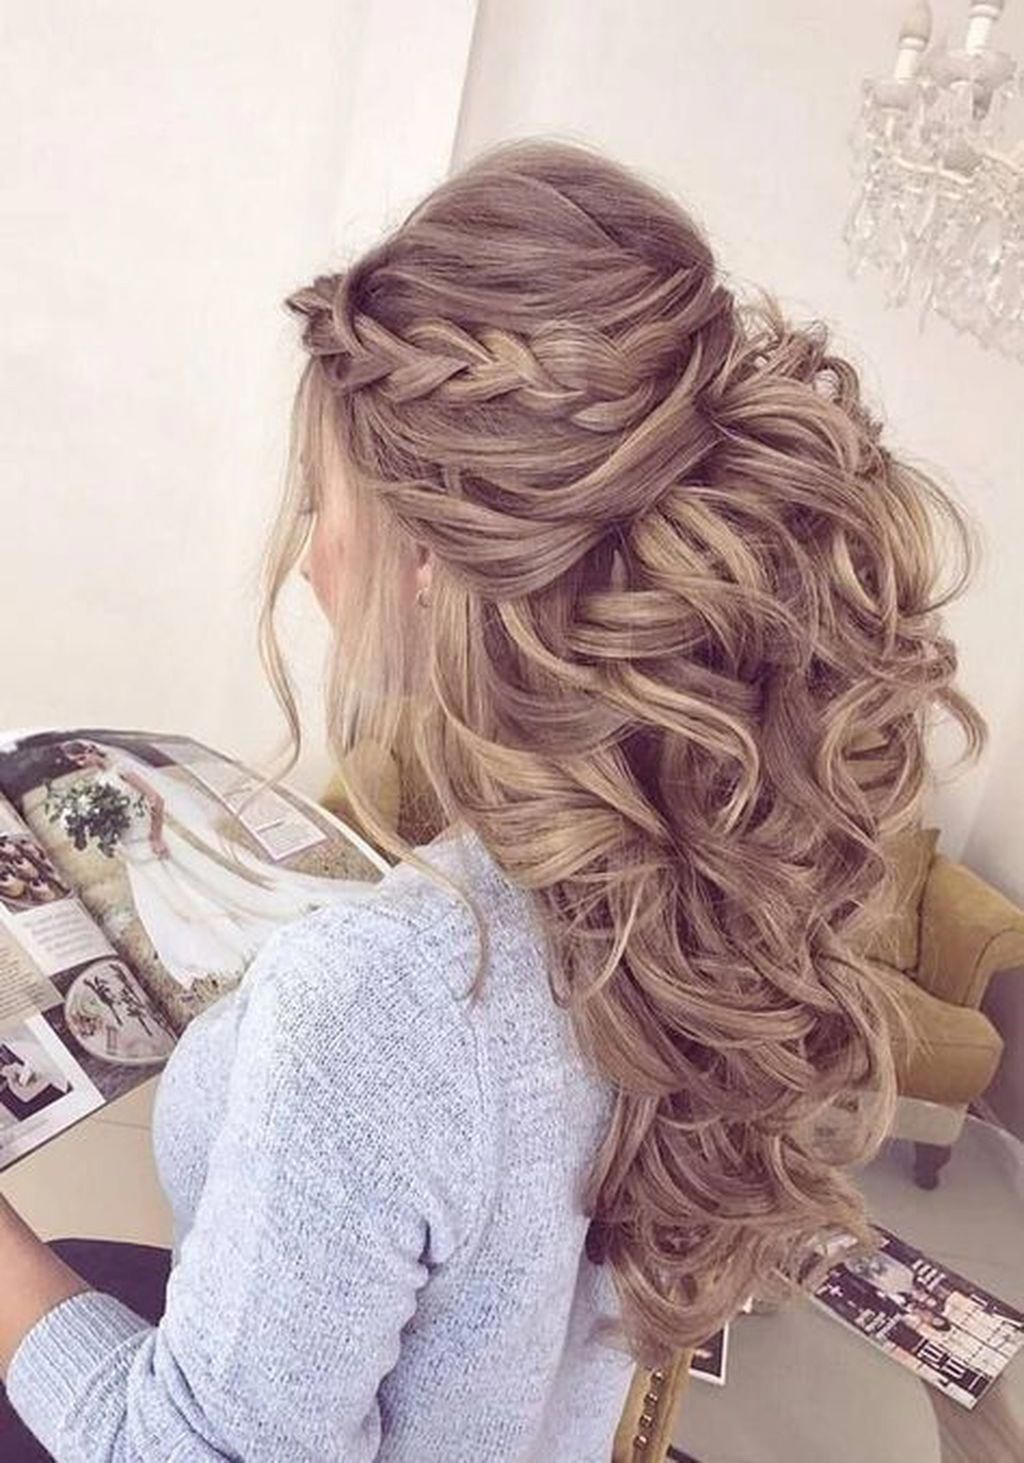 79 ridiculously romantic bridal updos | Wedding hairstyles ...